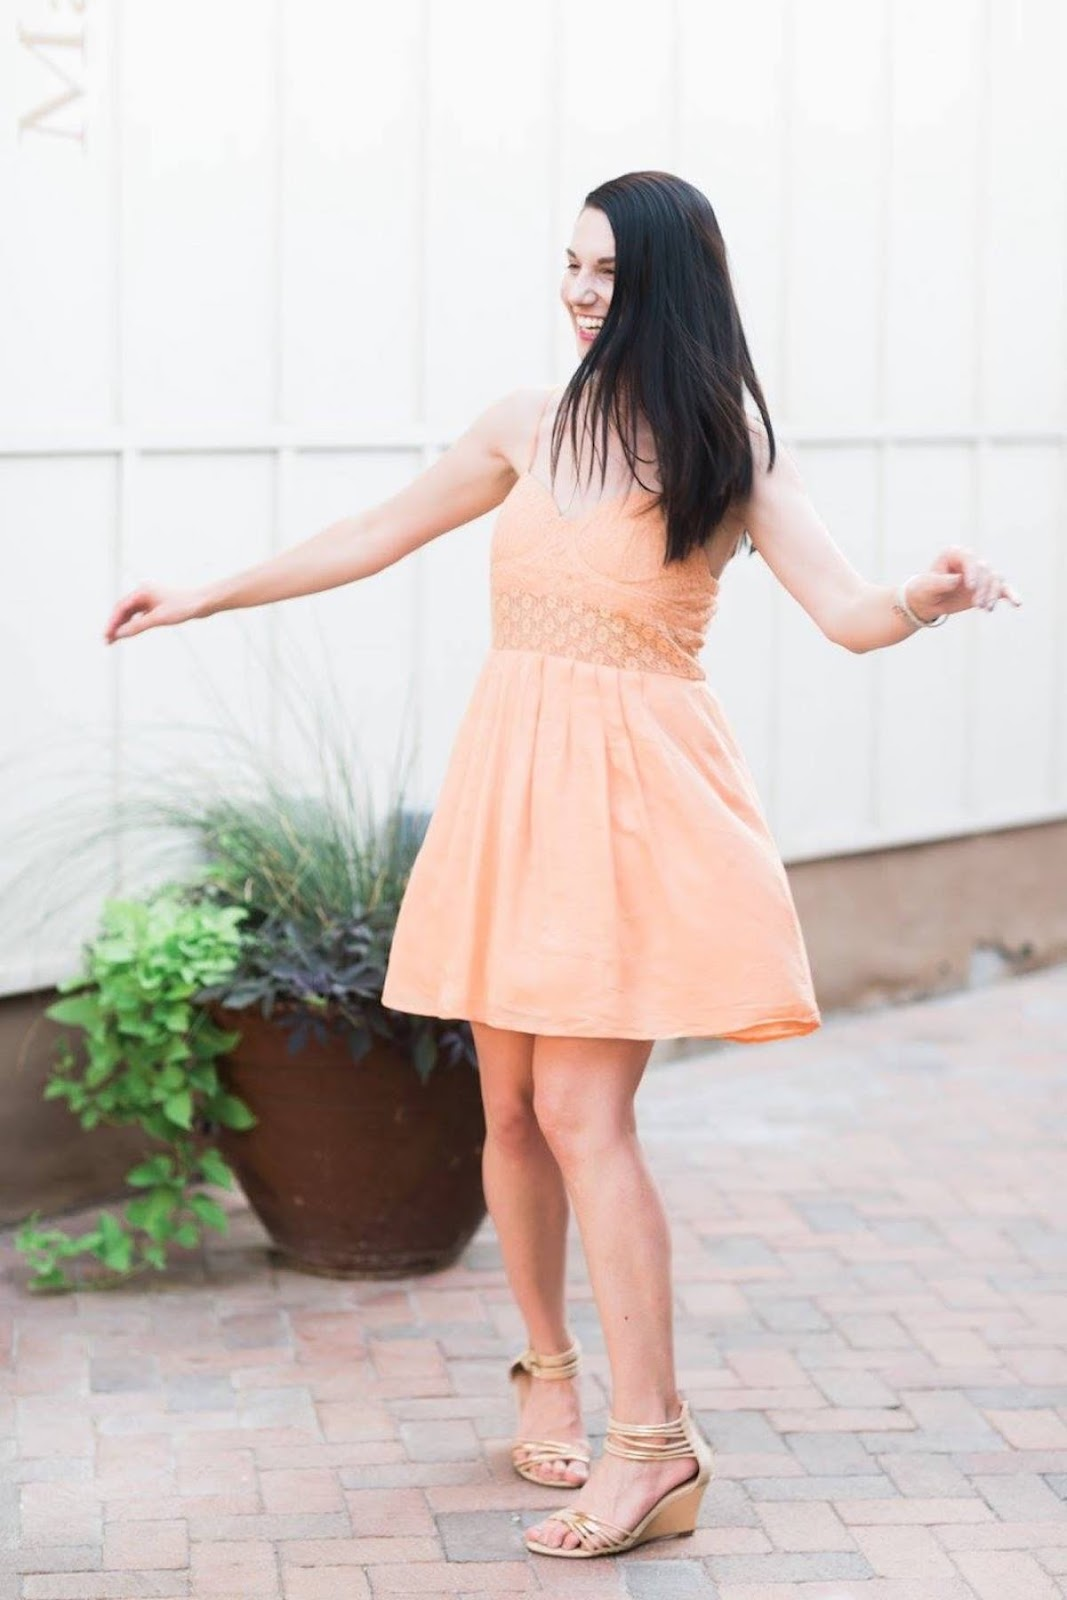 This is a photo of me twirling in an orange lace dress.